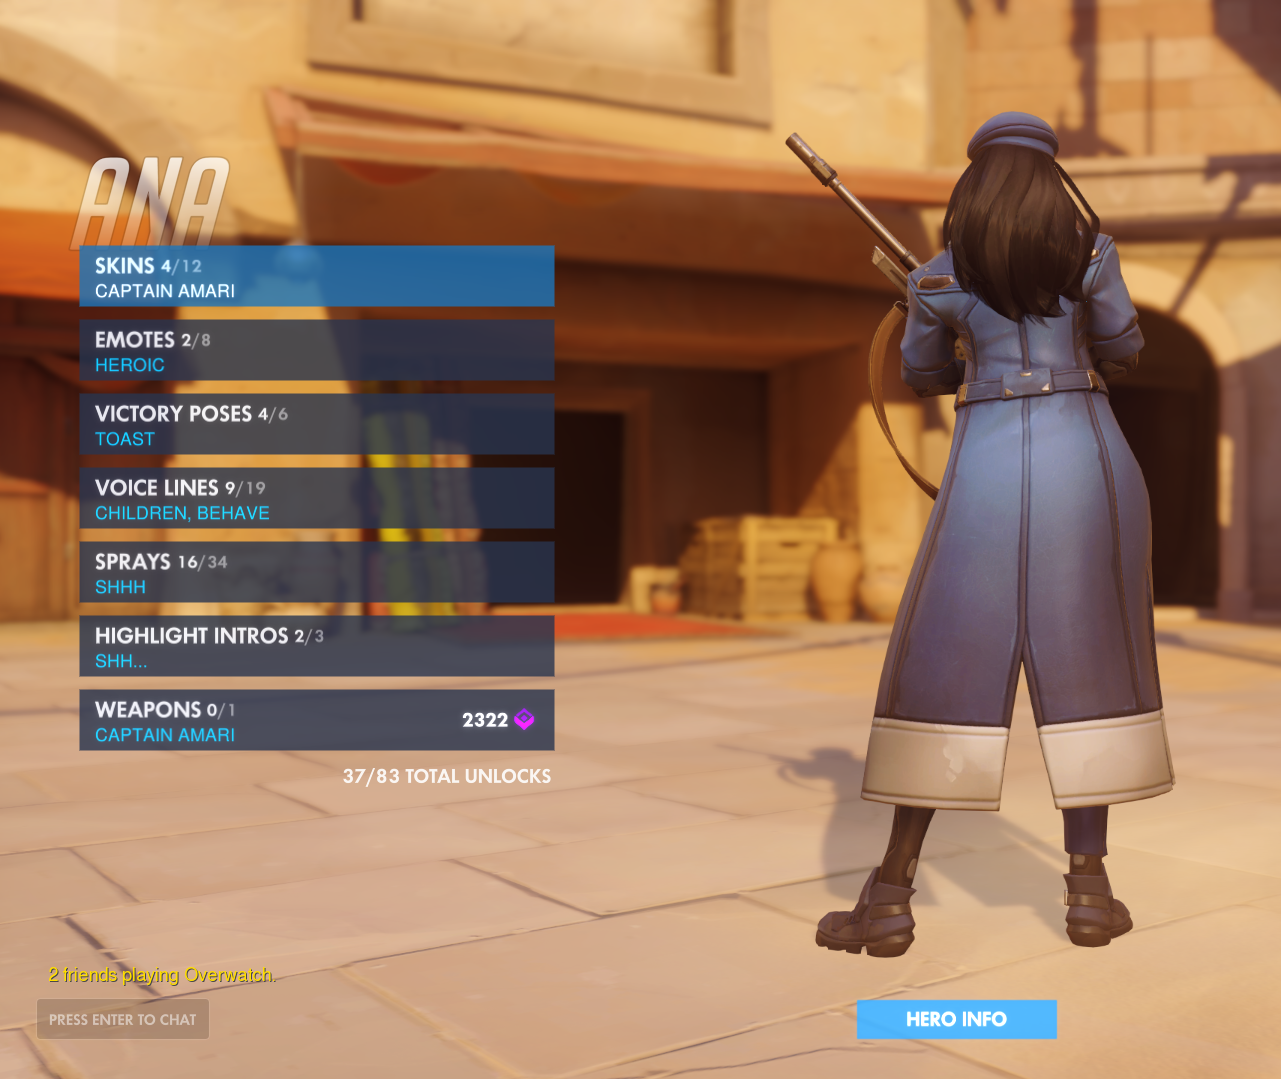 Ana Emotes for reference: back | victory pose, ana, poses